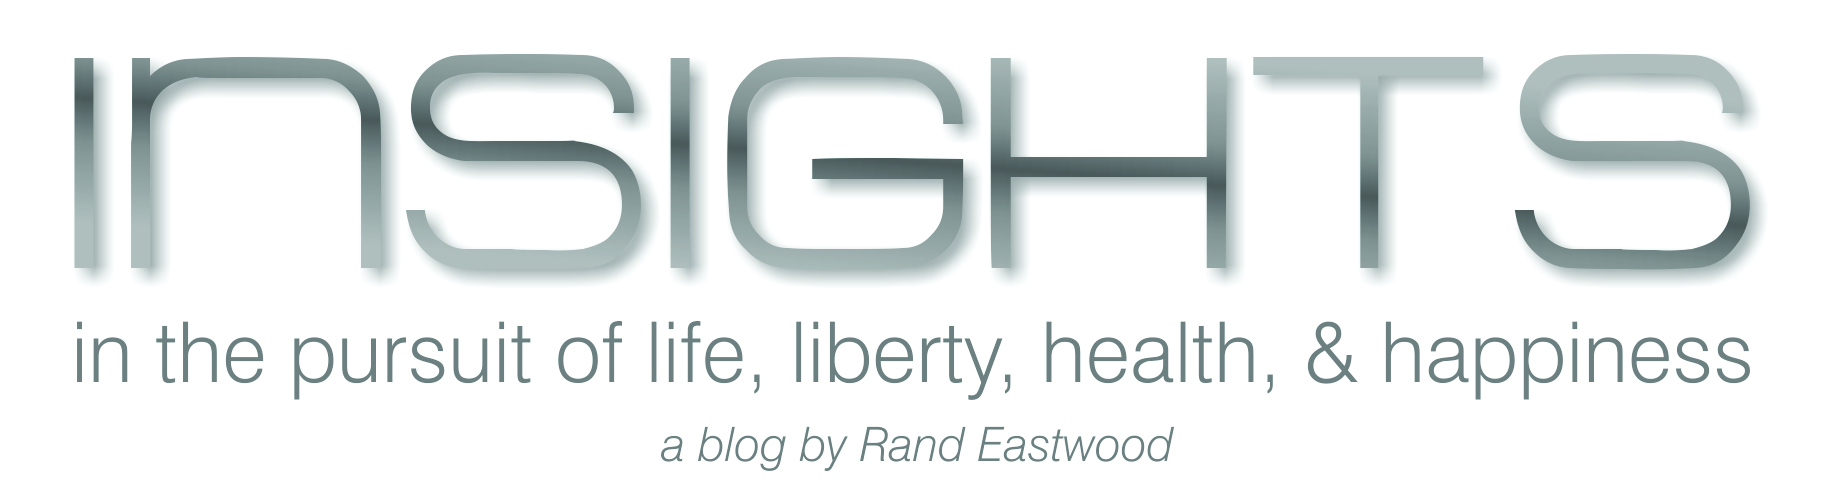 in the pursuit of life, liberty, health, & happiness